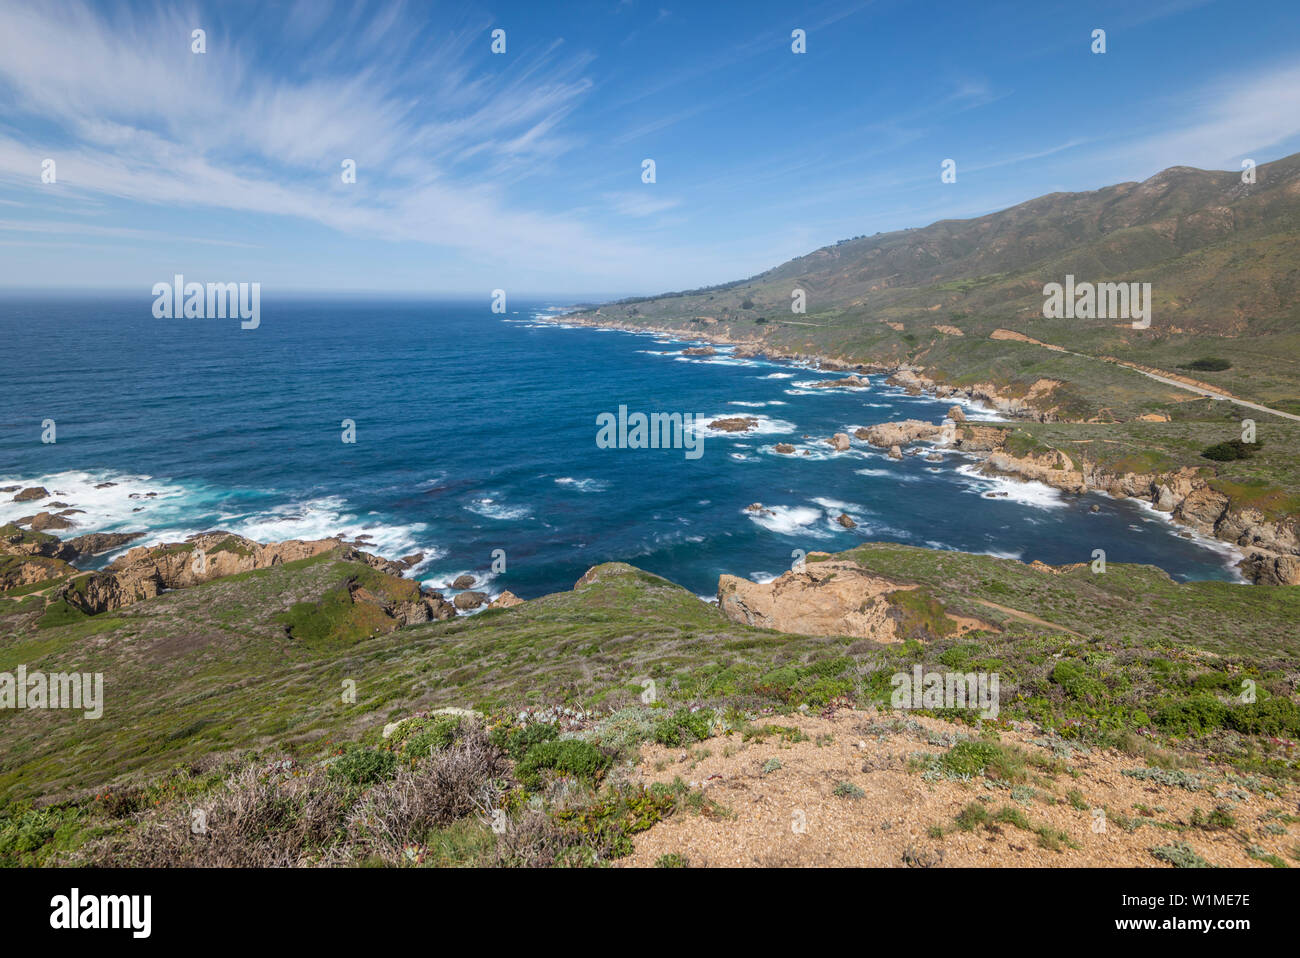 Ocean and mountains. View from atop Whale Peak. Garrapata State Park, Monterey coast, California, USA. - Stock Image